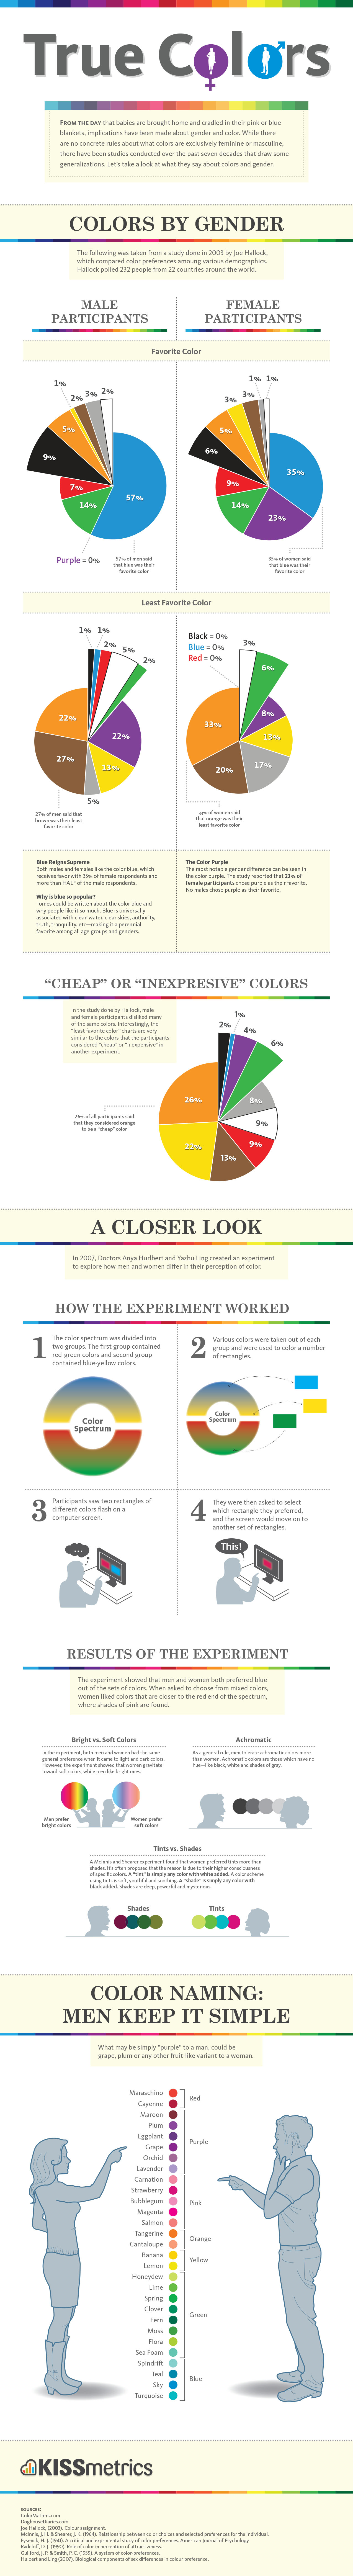 True Colors - A Breakdown of Color Preferences by Gender